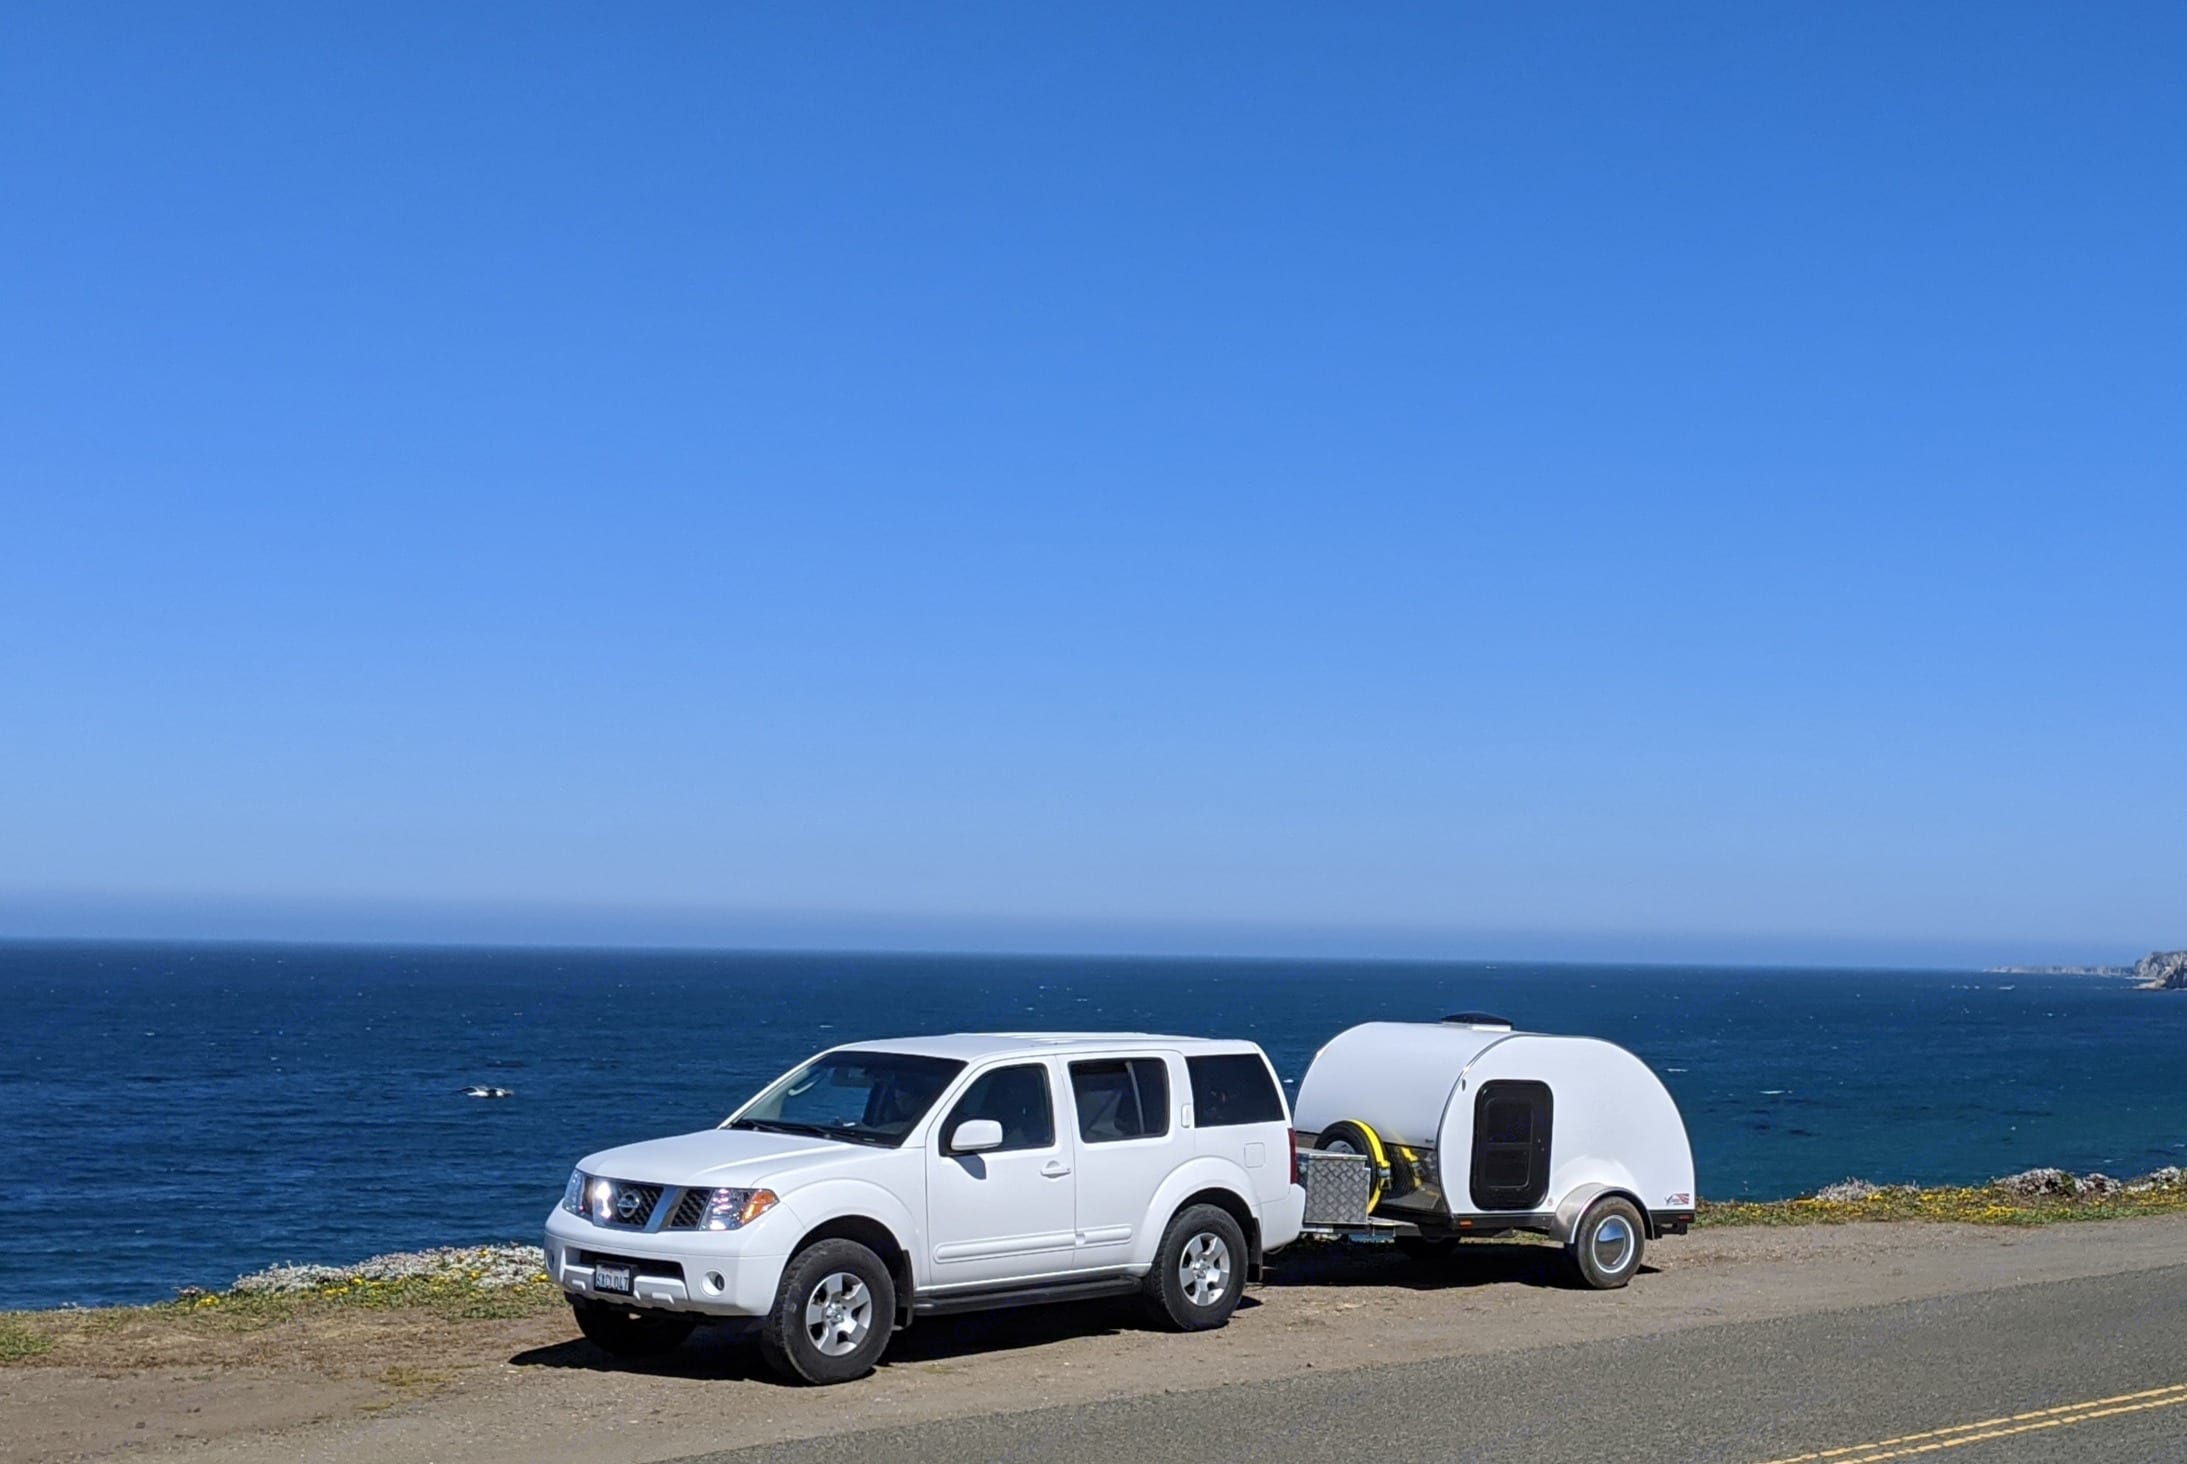 Tounge box and spare tire. American Teardrop Travel Trailer 2017